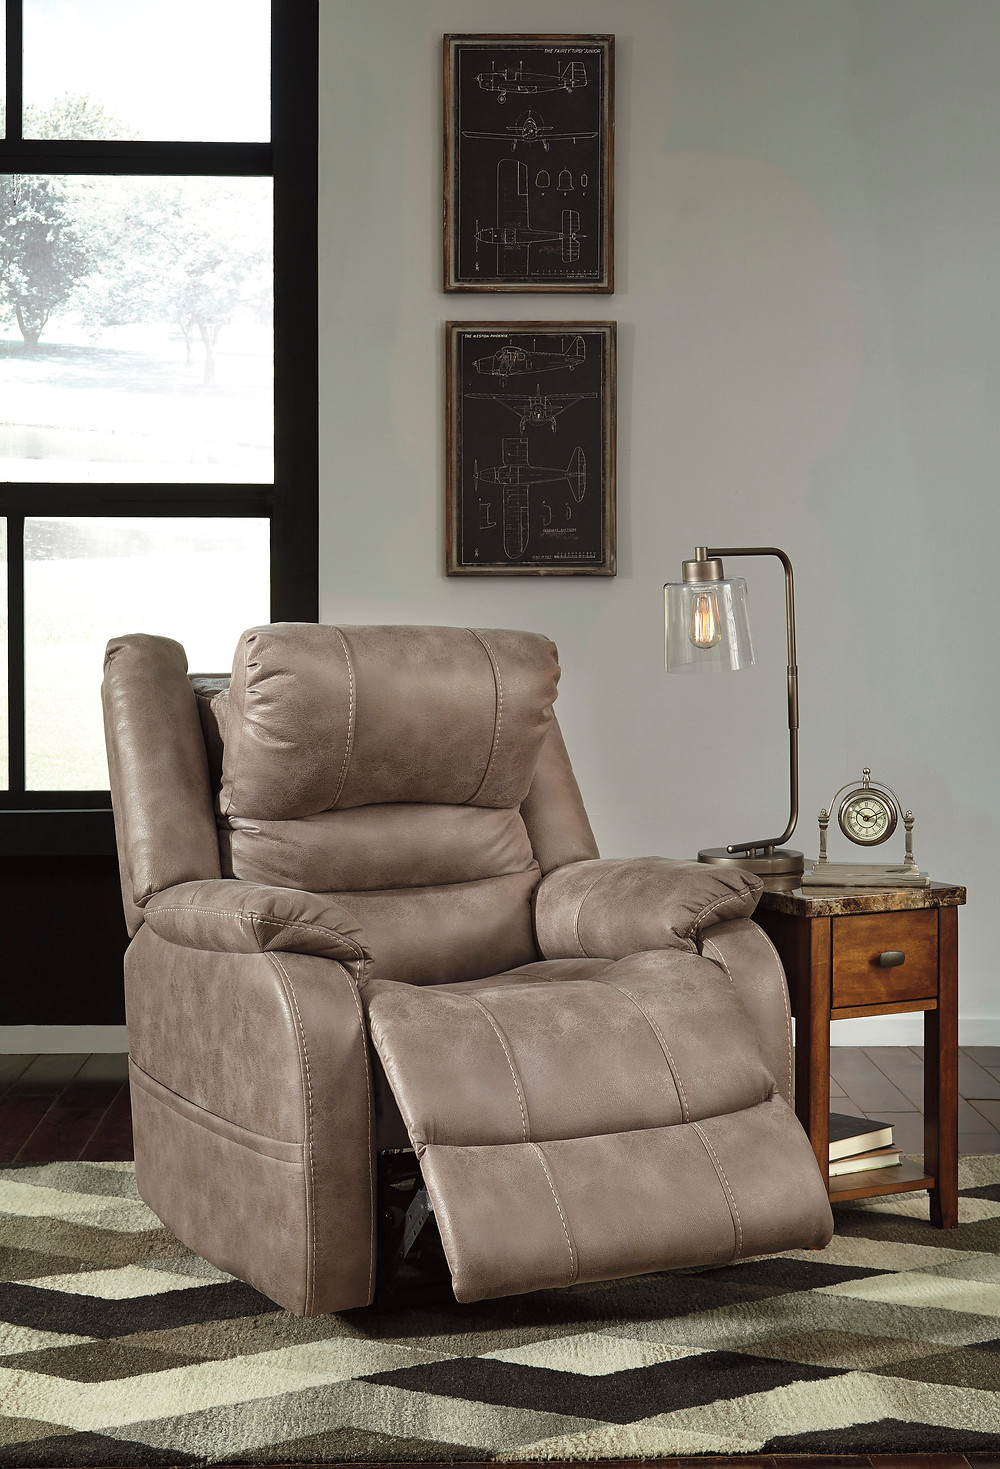 Barling power recliner